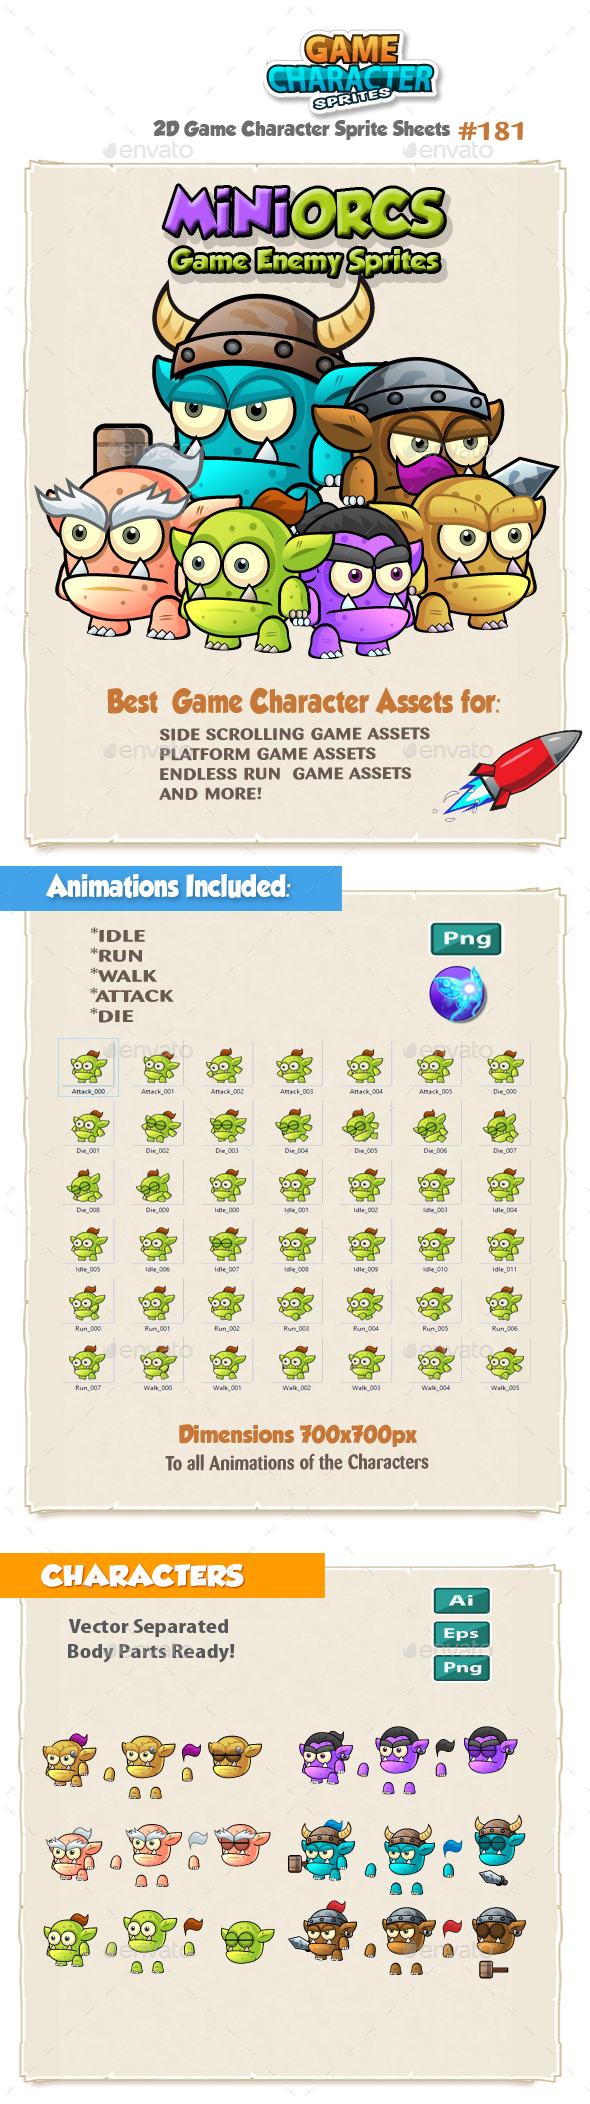 Mini Orcs Game Character Sprites 181 - Sprites Game Assets